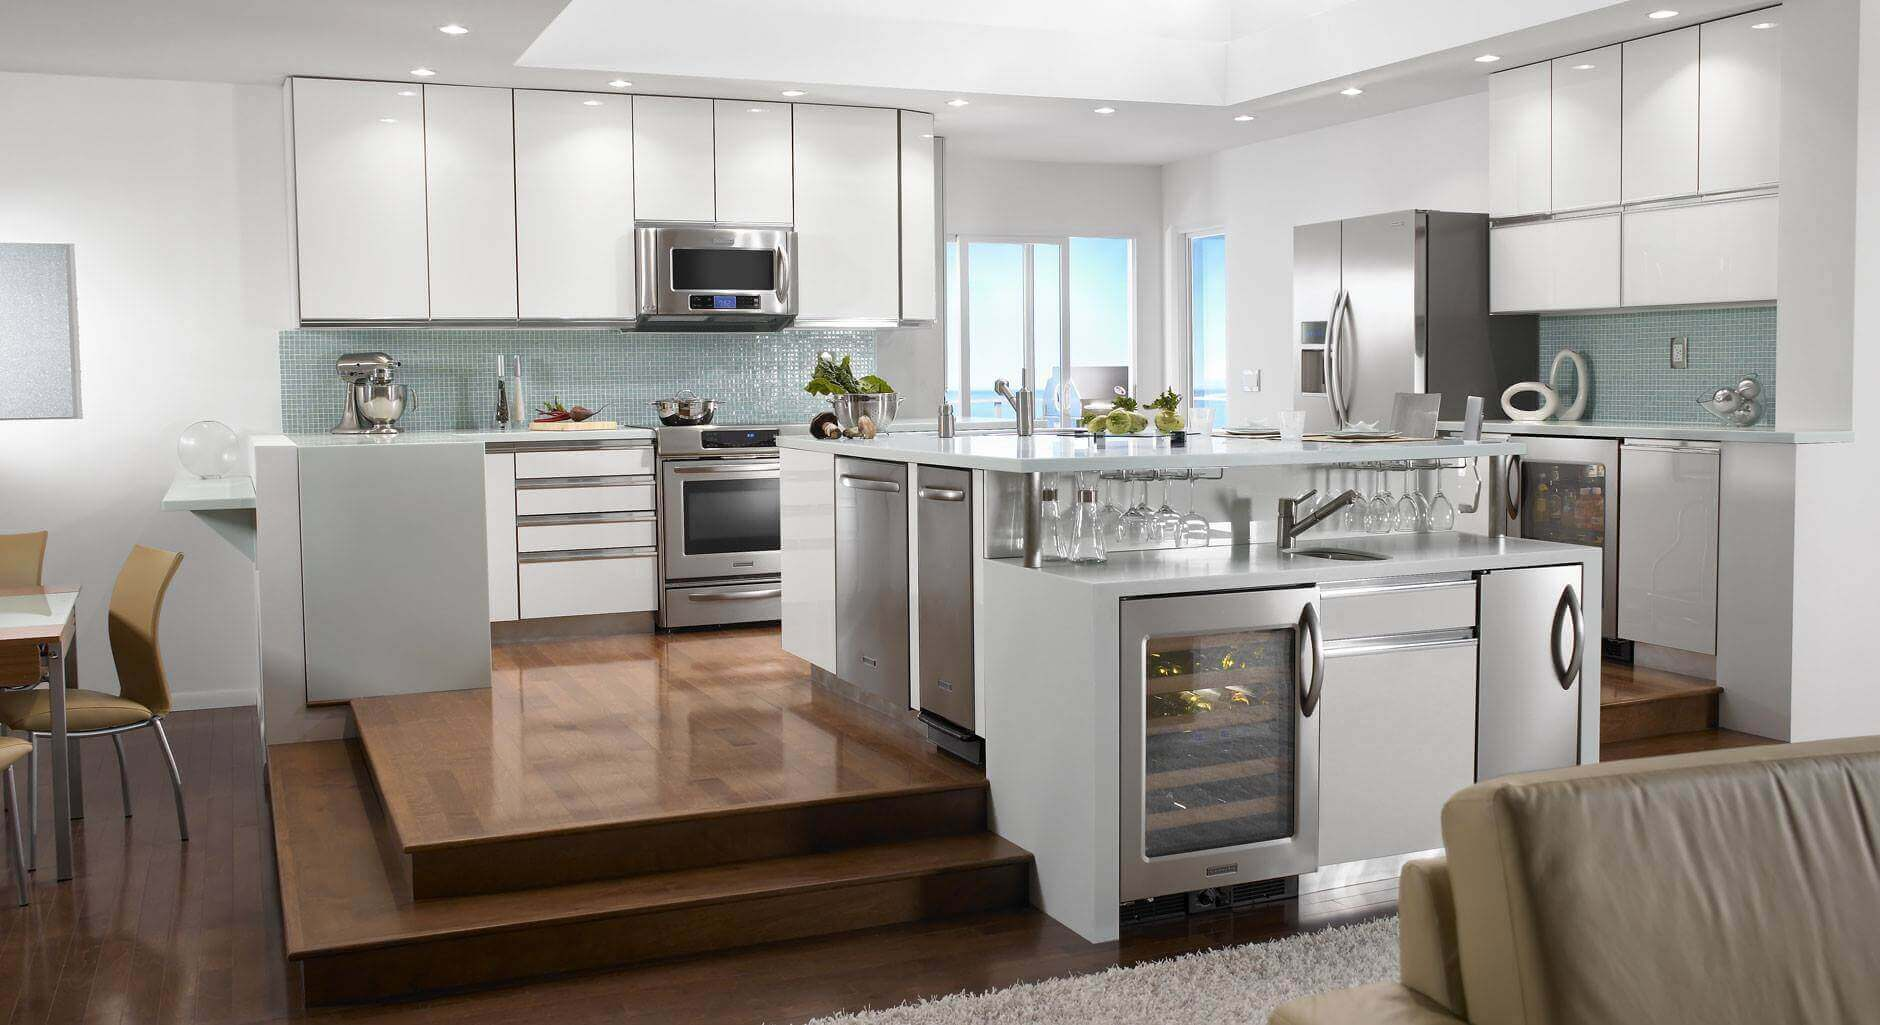 Top 65 luxury kitchen design ideas exclusive gallery for Luxury oven